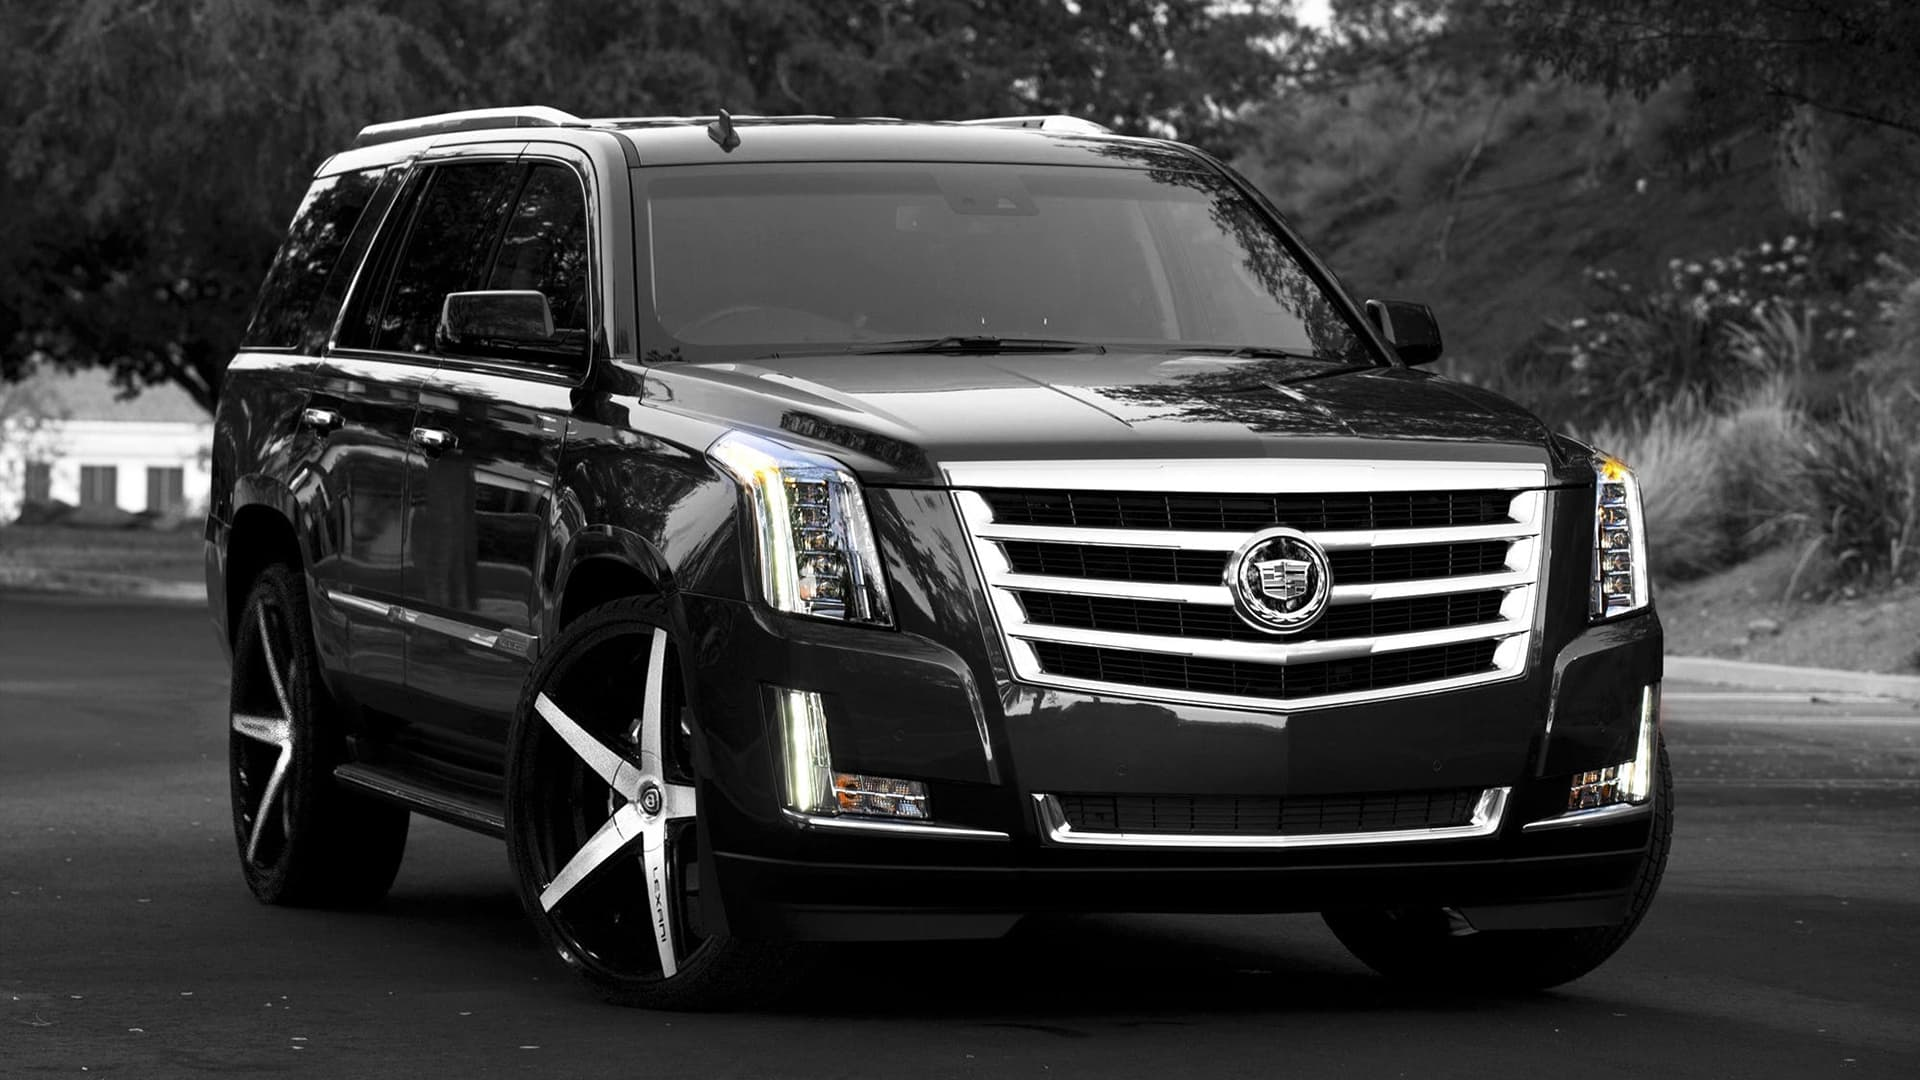 new 2015 cadillac escalade car interior design. Black Bedroom Furniture Sets. Home Design Ideas